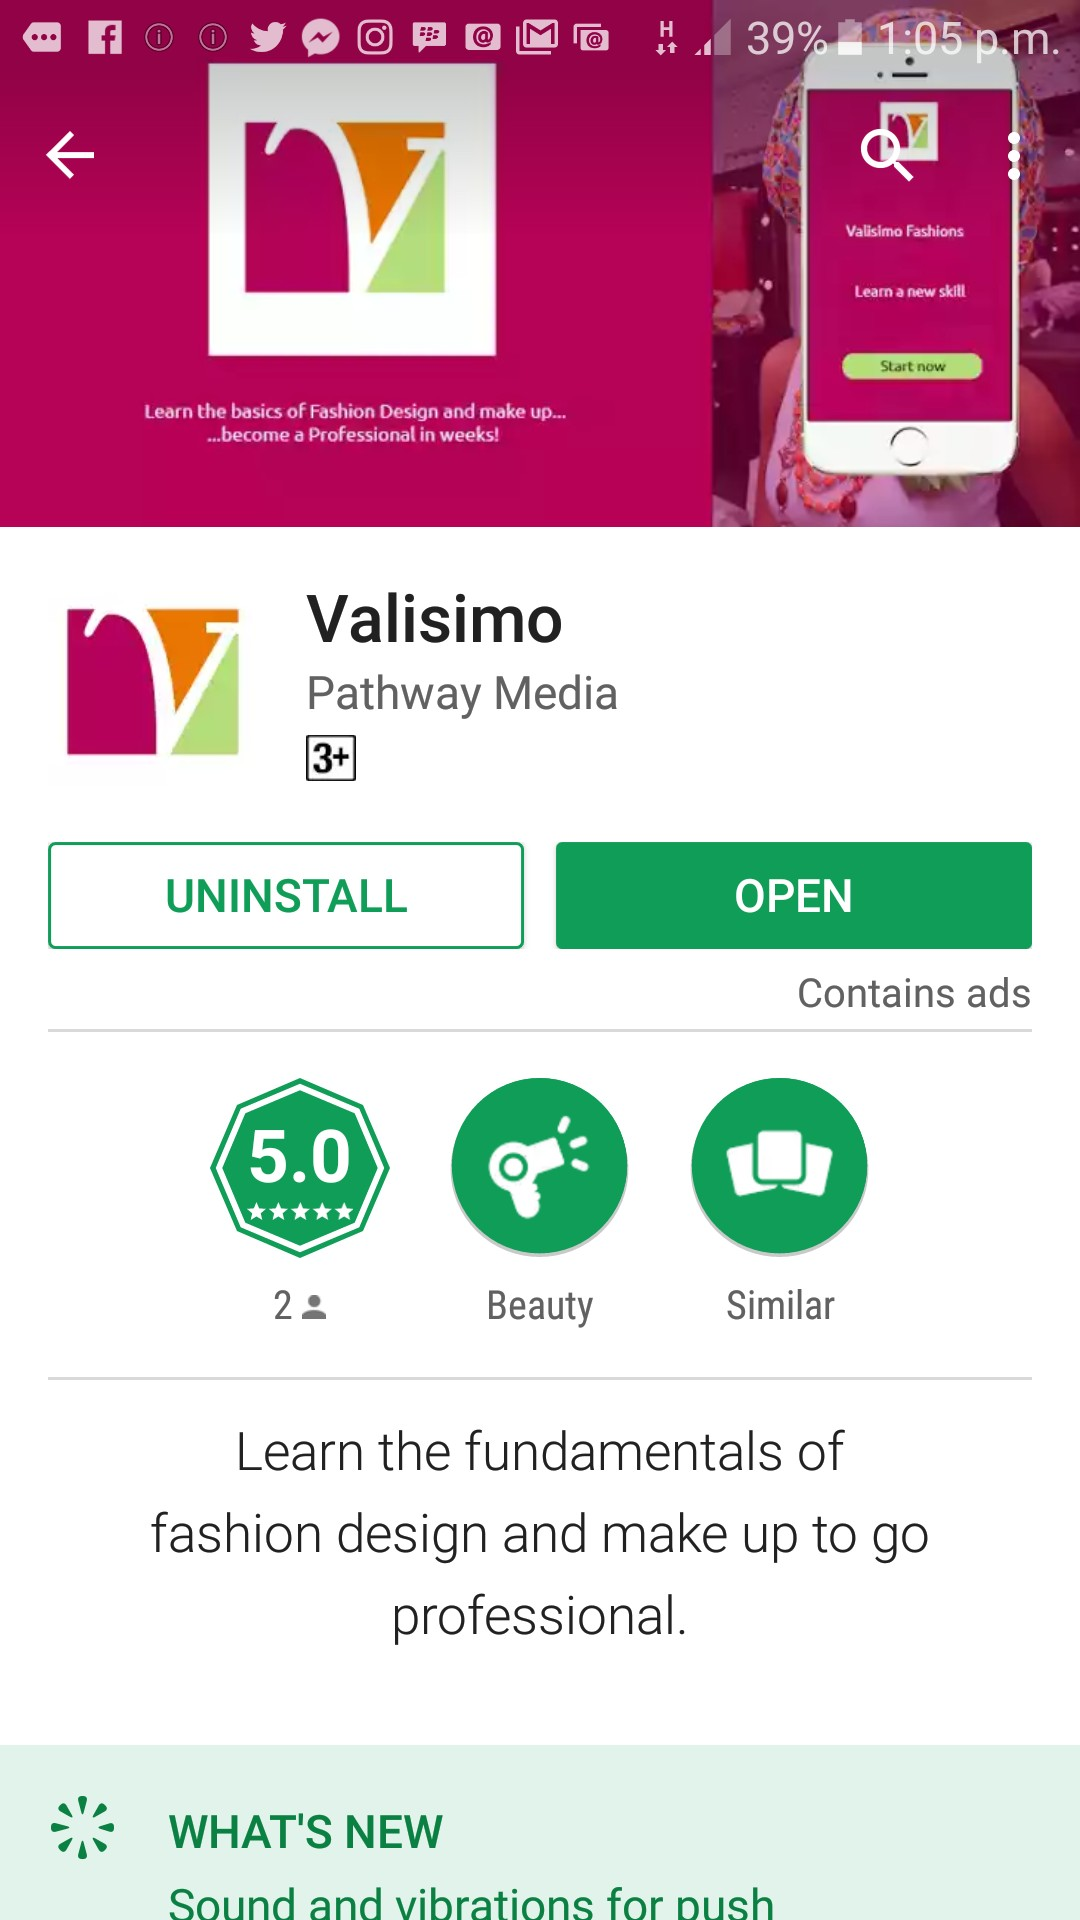 Happy April 1. Valisimo Fashions launches the Valisimo sewing tutorial app!